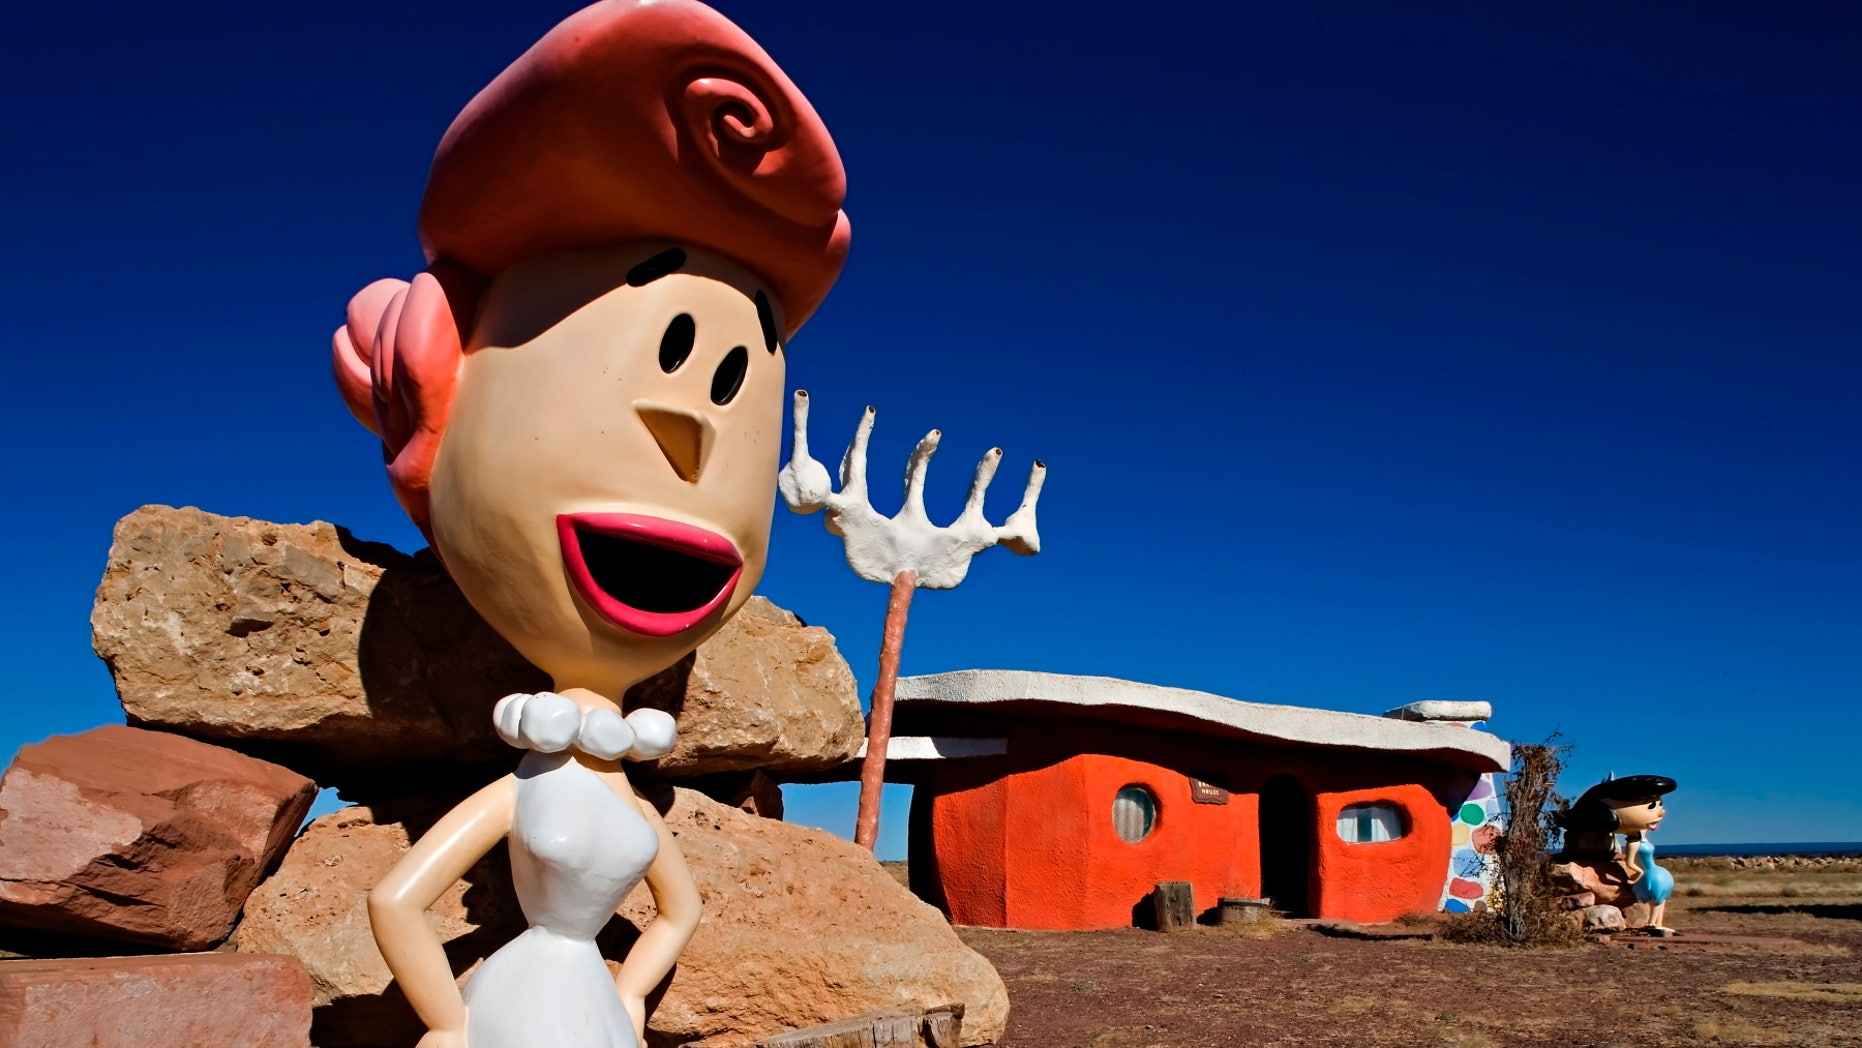 Flintstones Bedrock City, which featured a restaurant, RV center and gift shop, closed in late January after originally opening in 1972.